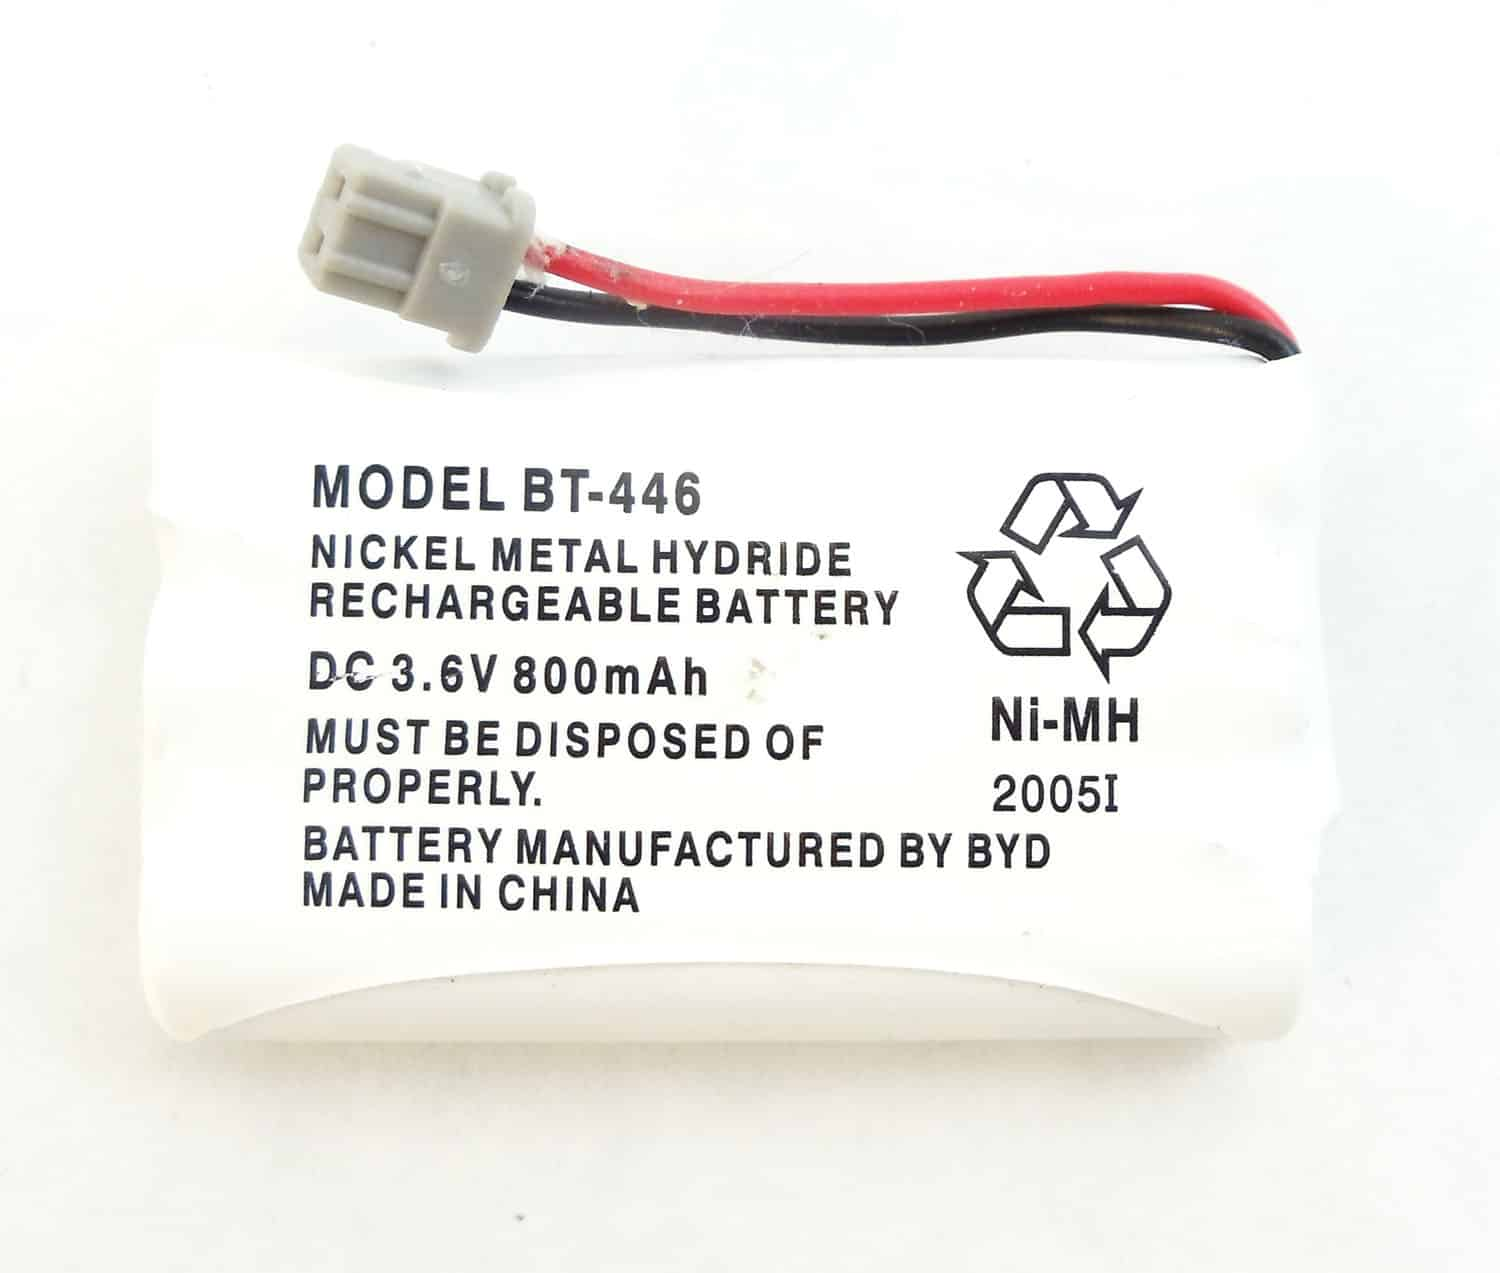 BT446 - Uniden Nickel Hydride Rechargeable Battery For T4 Series